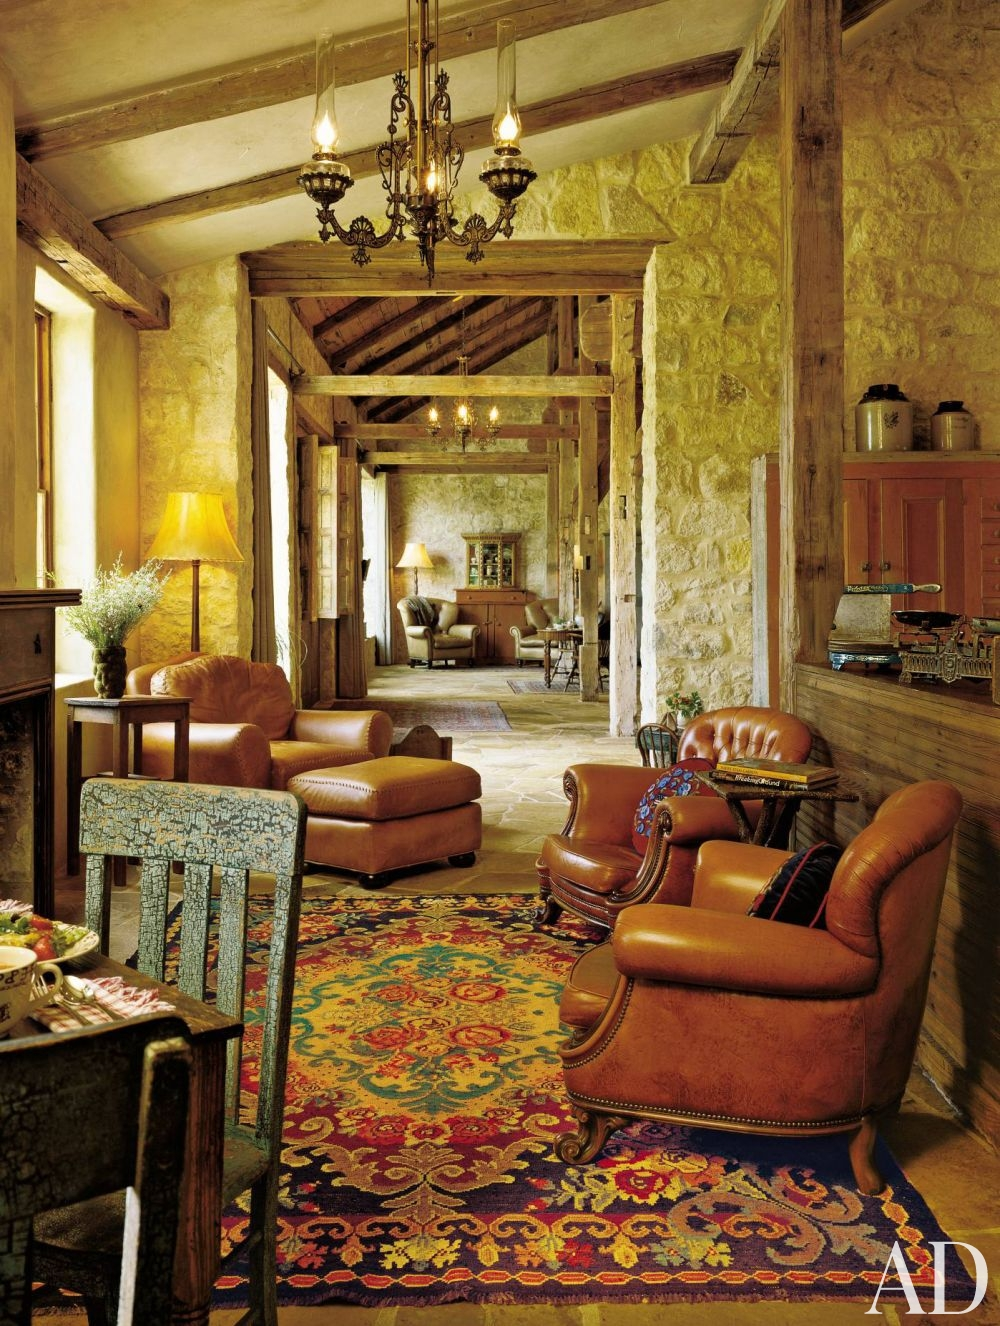 Rustic Living Room: Rustic-living-room-fredericksburg-texas-200506-2_1000